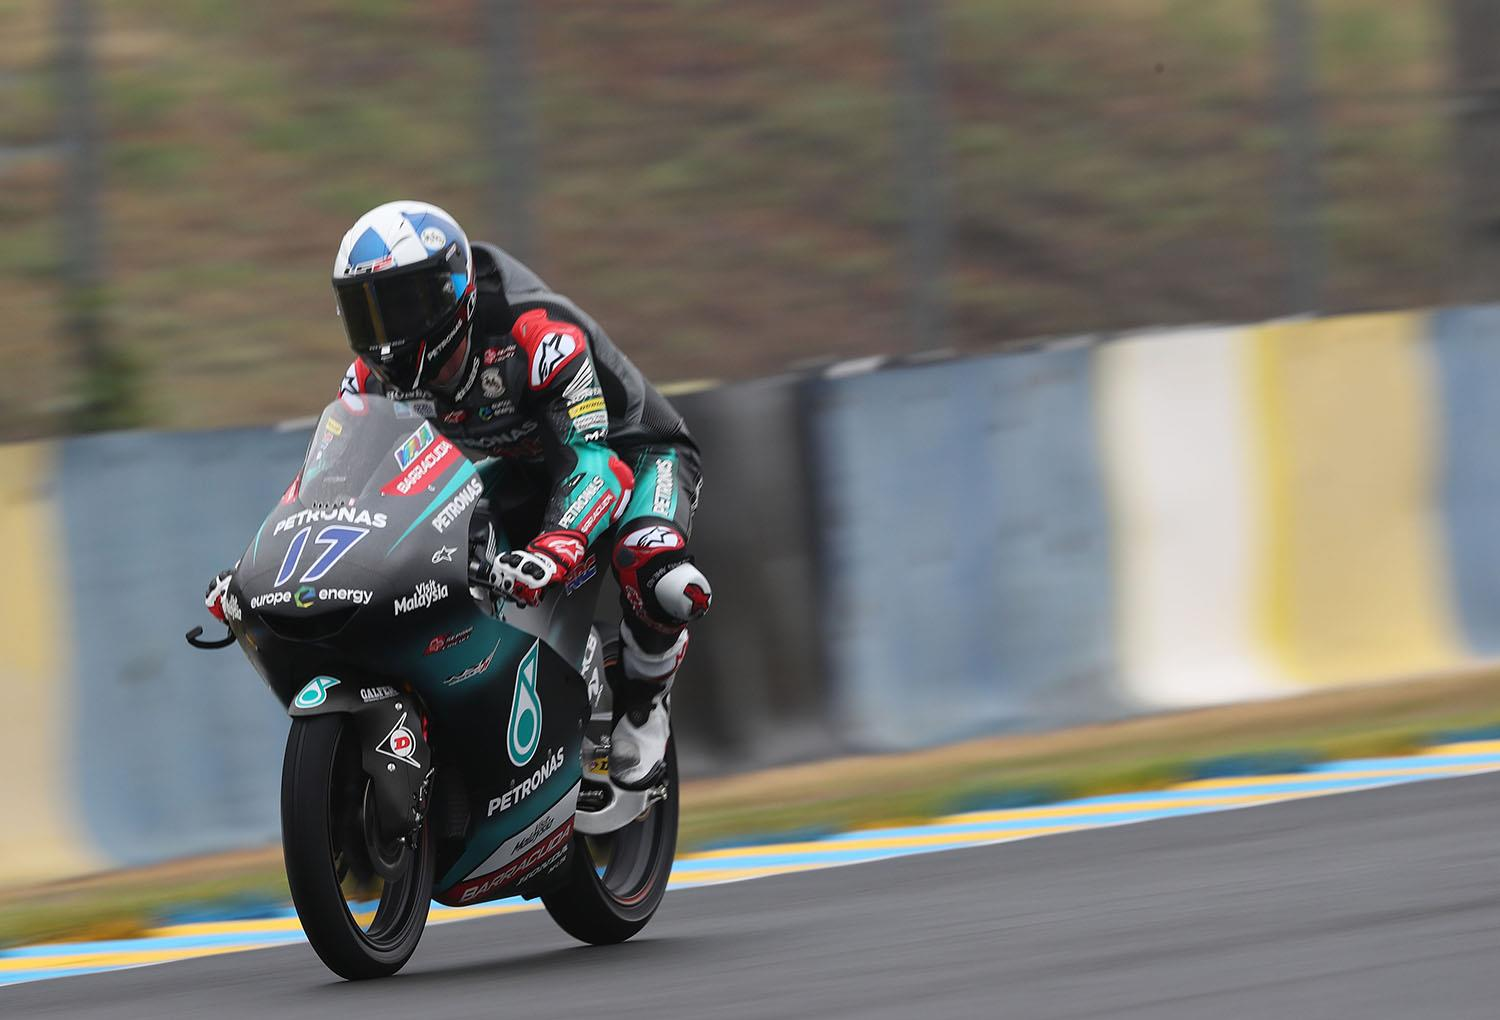 Moto3: McPhee confident that Le Mans form will continue to Mugello